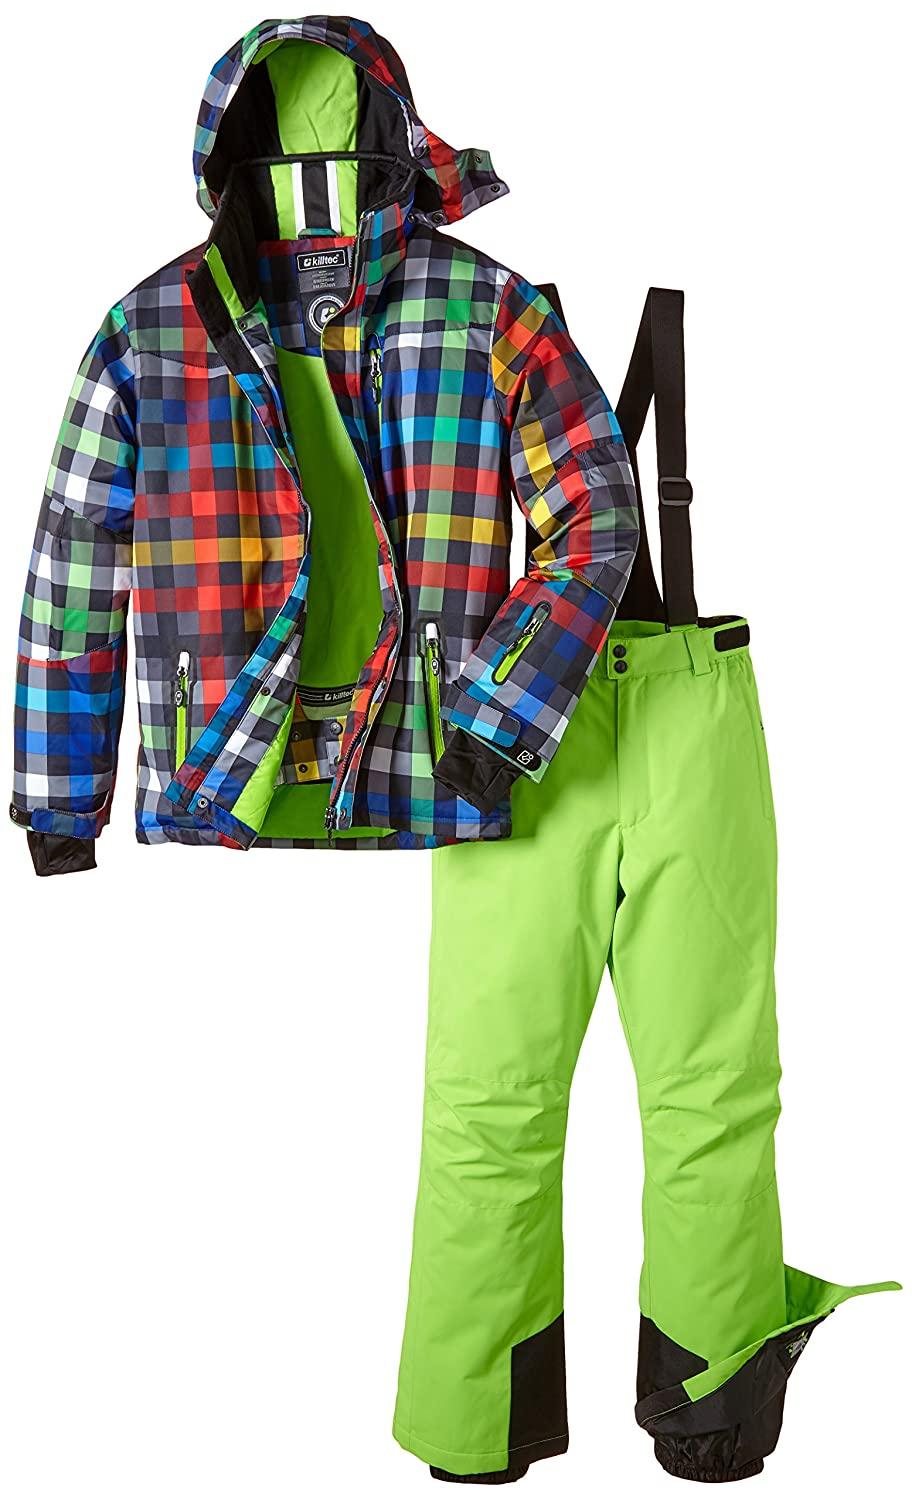 Killtec Kinder Kids Ski Set Kolin Junior